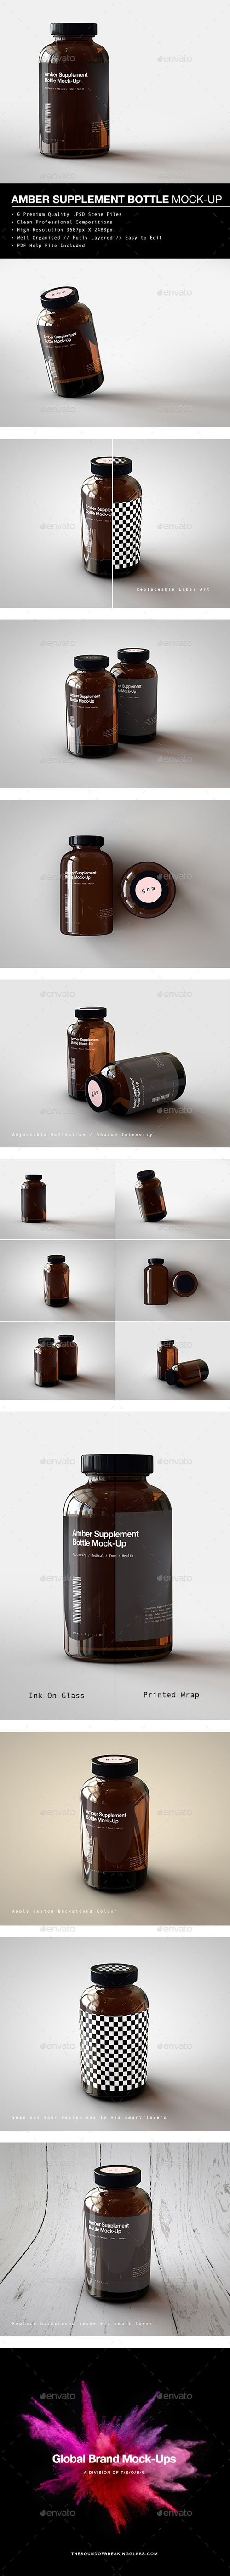 Amber Supplement Bottle | Vitamins Bottle Mock-Up 20280290